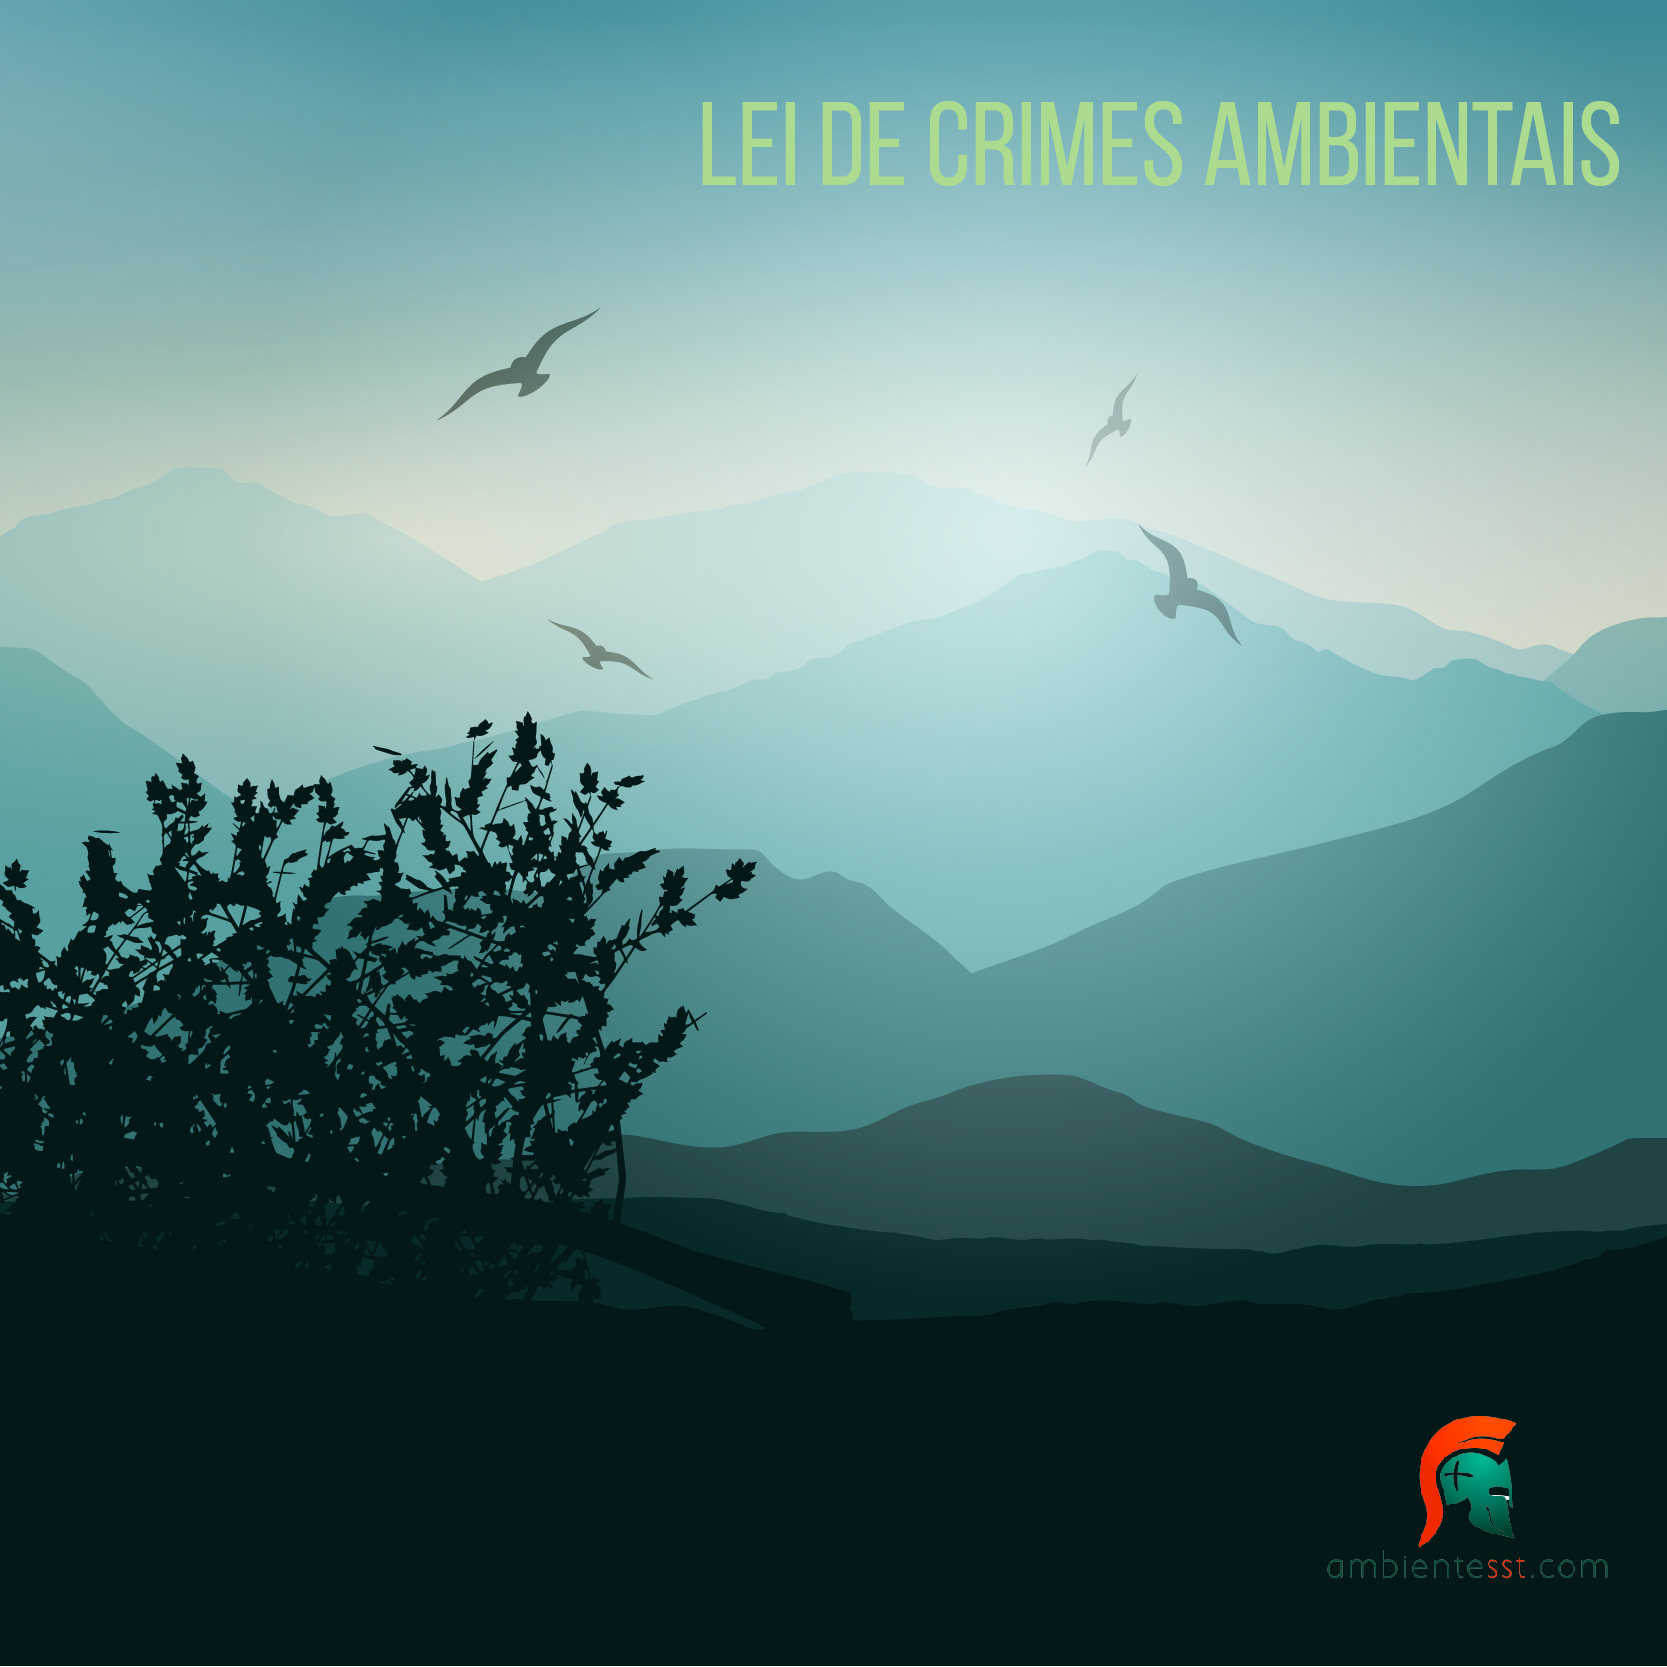 Lei de crimes ambientais-01-01